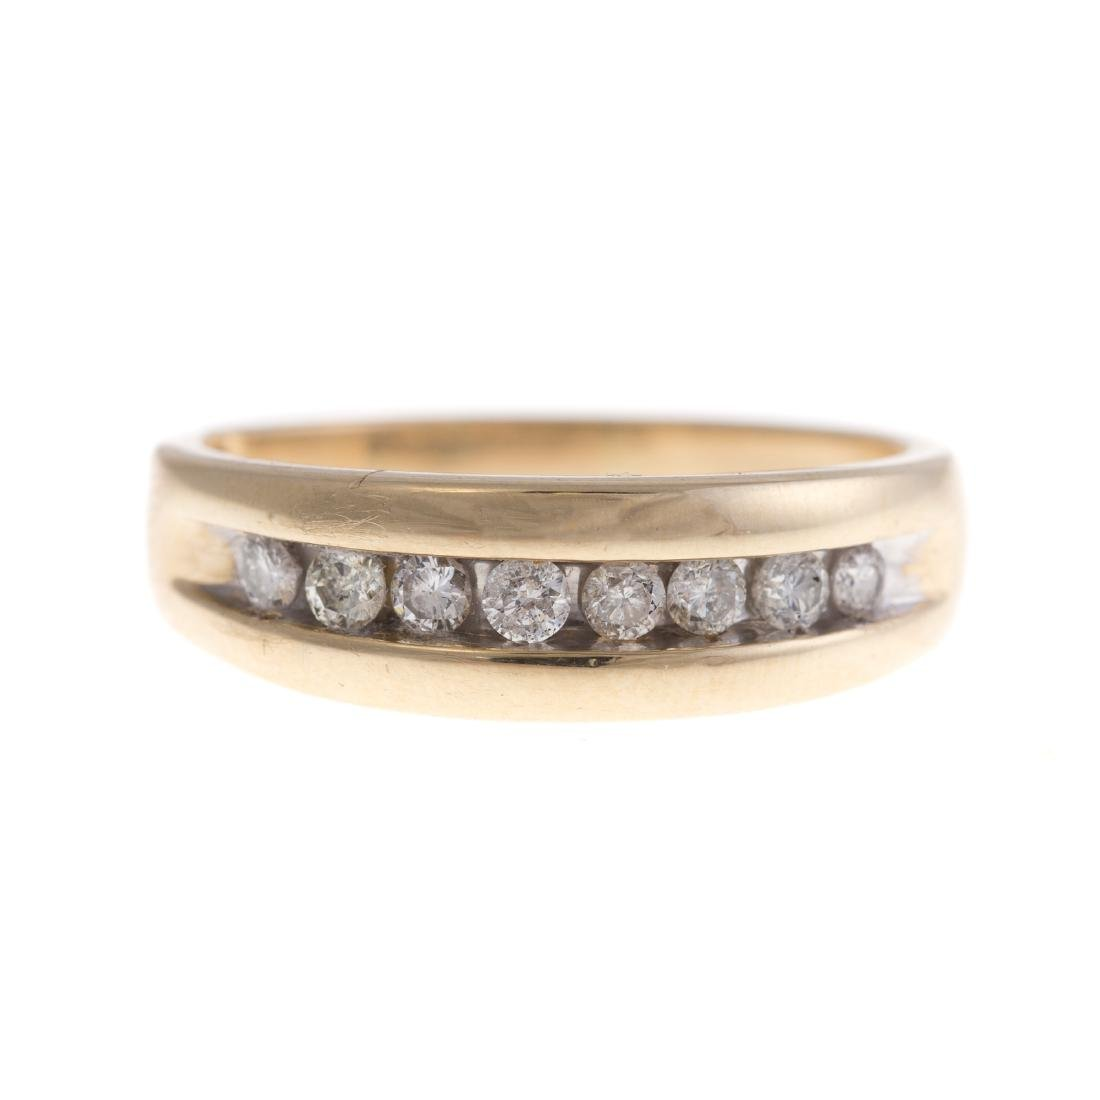 A Gentleman's Diamond Ring in 14K Gold